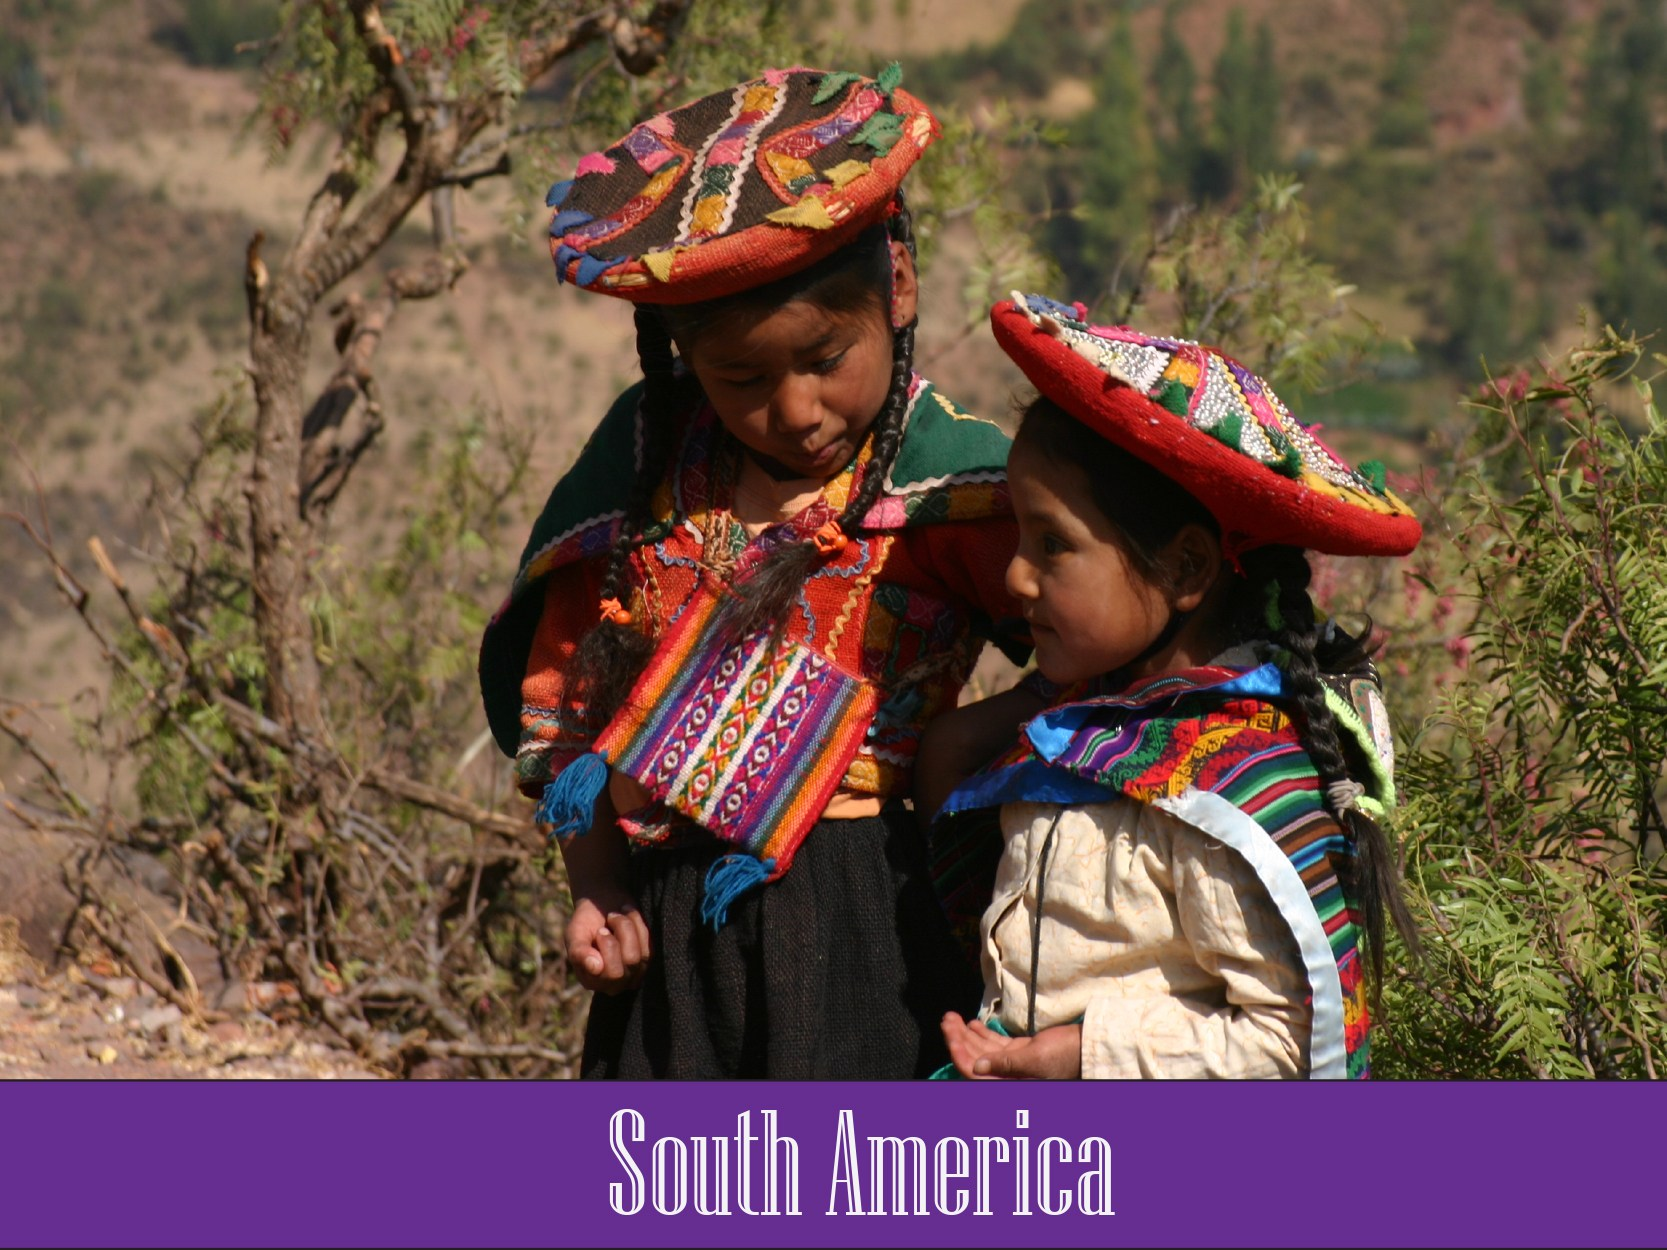 Places to visit in South America